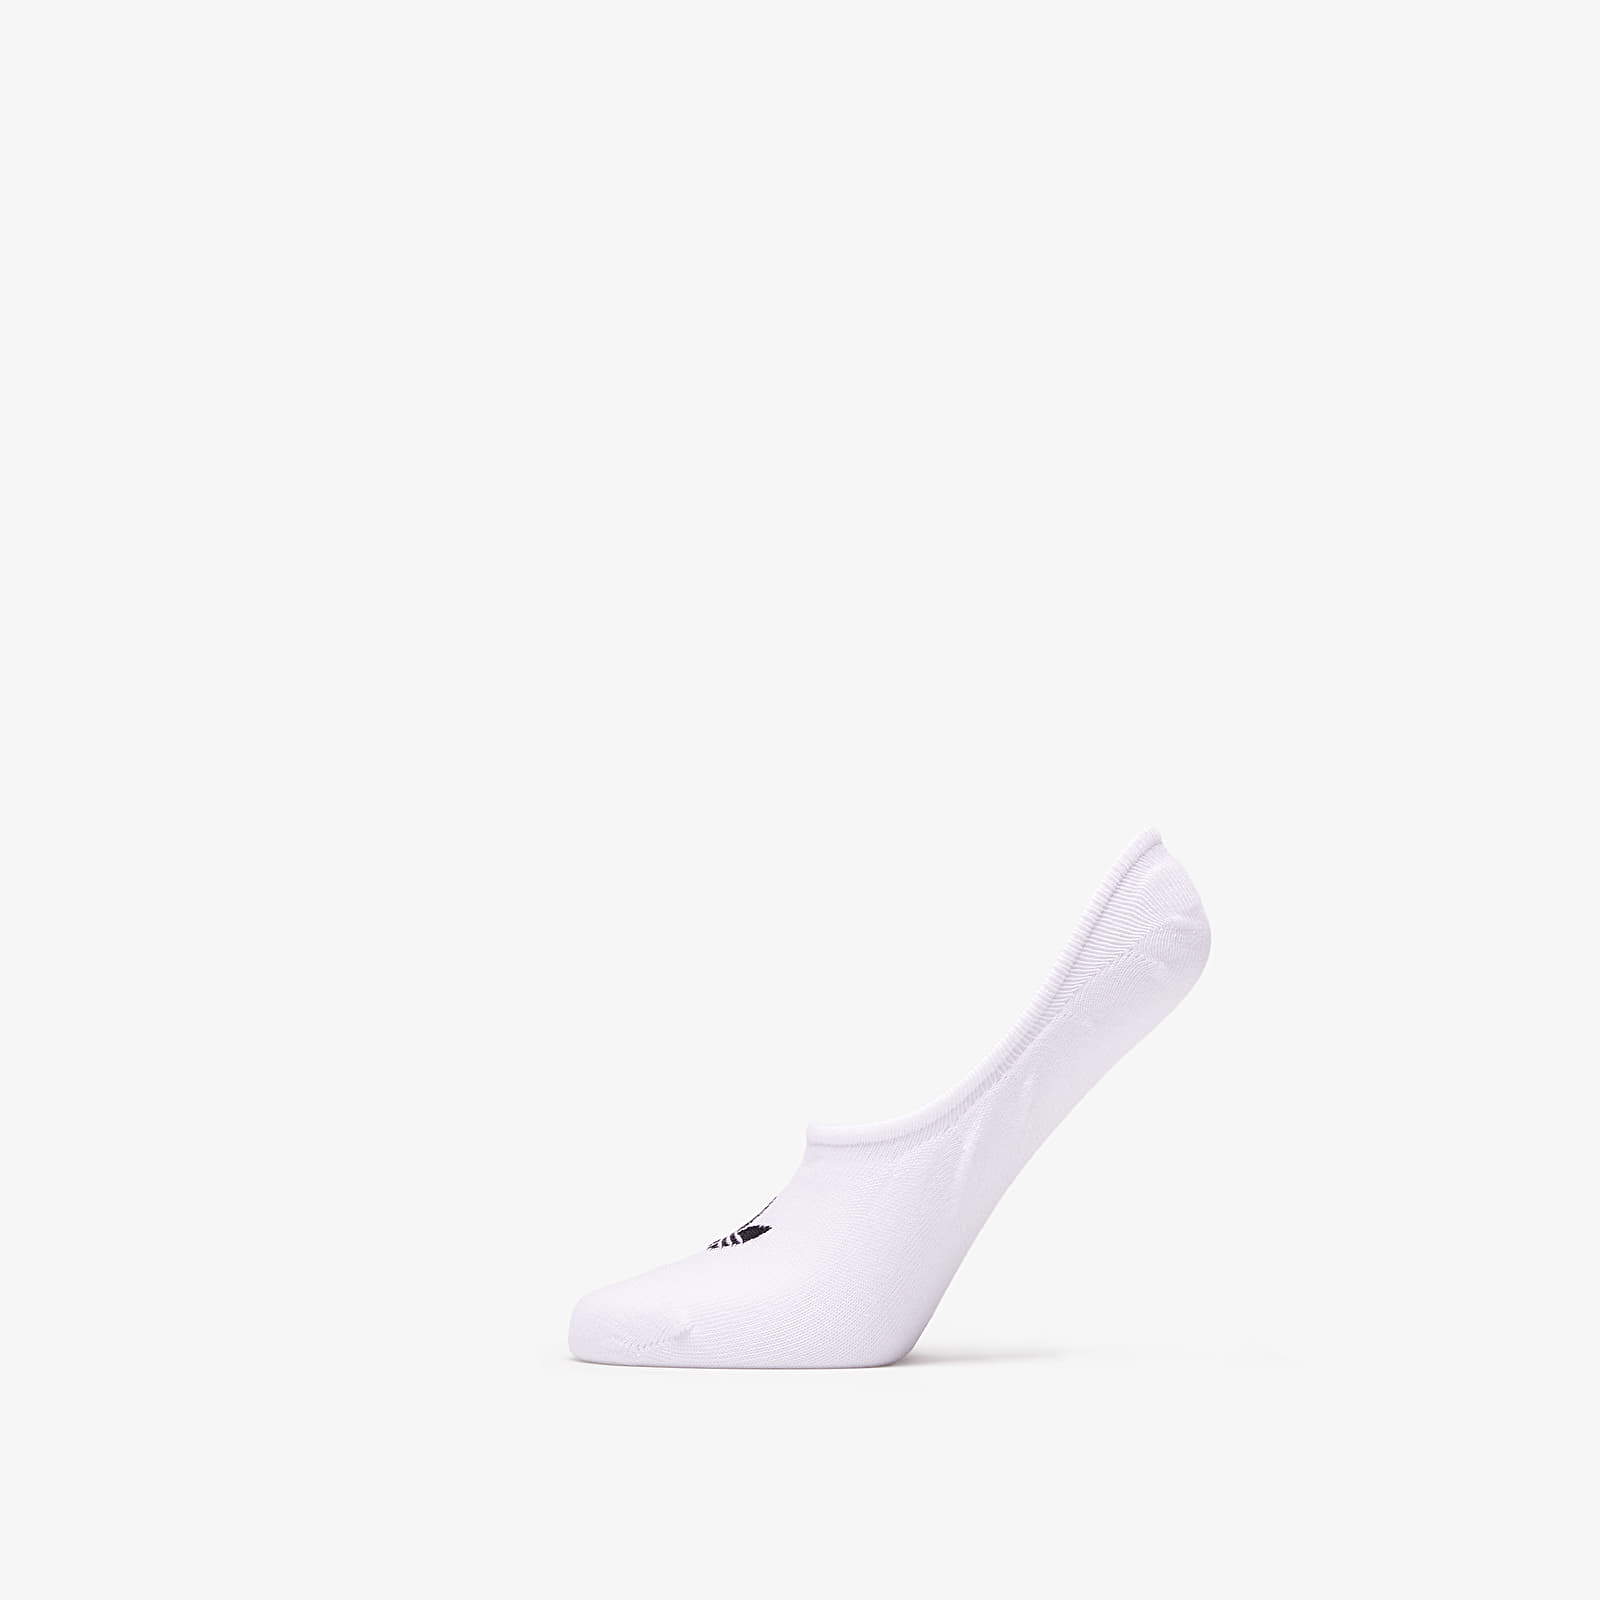 Calcetines invisibles adidas Low Cut Socks 3Pack White